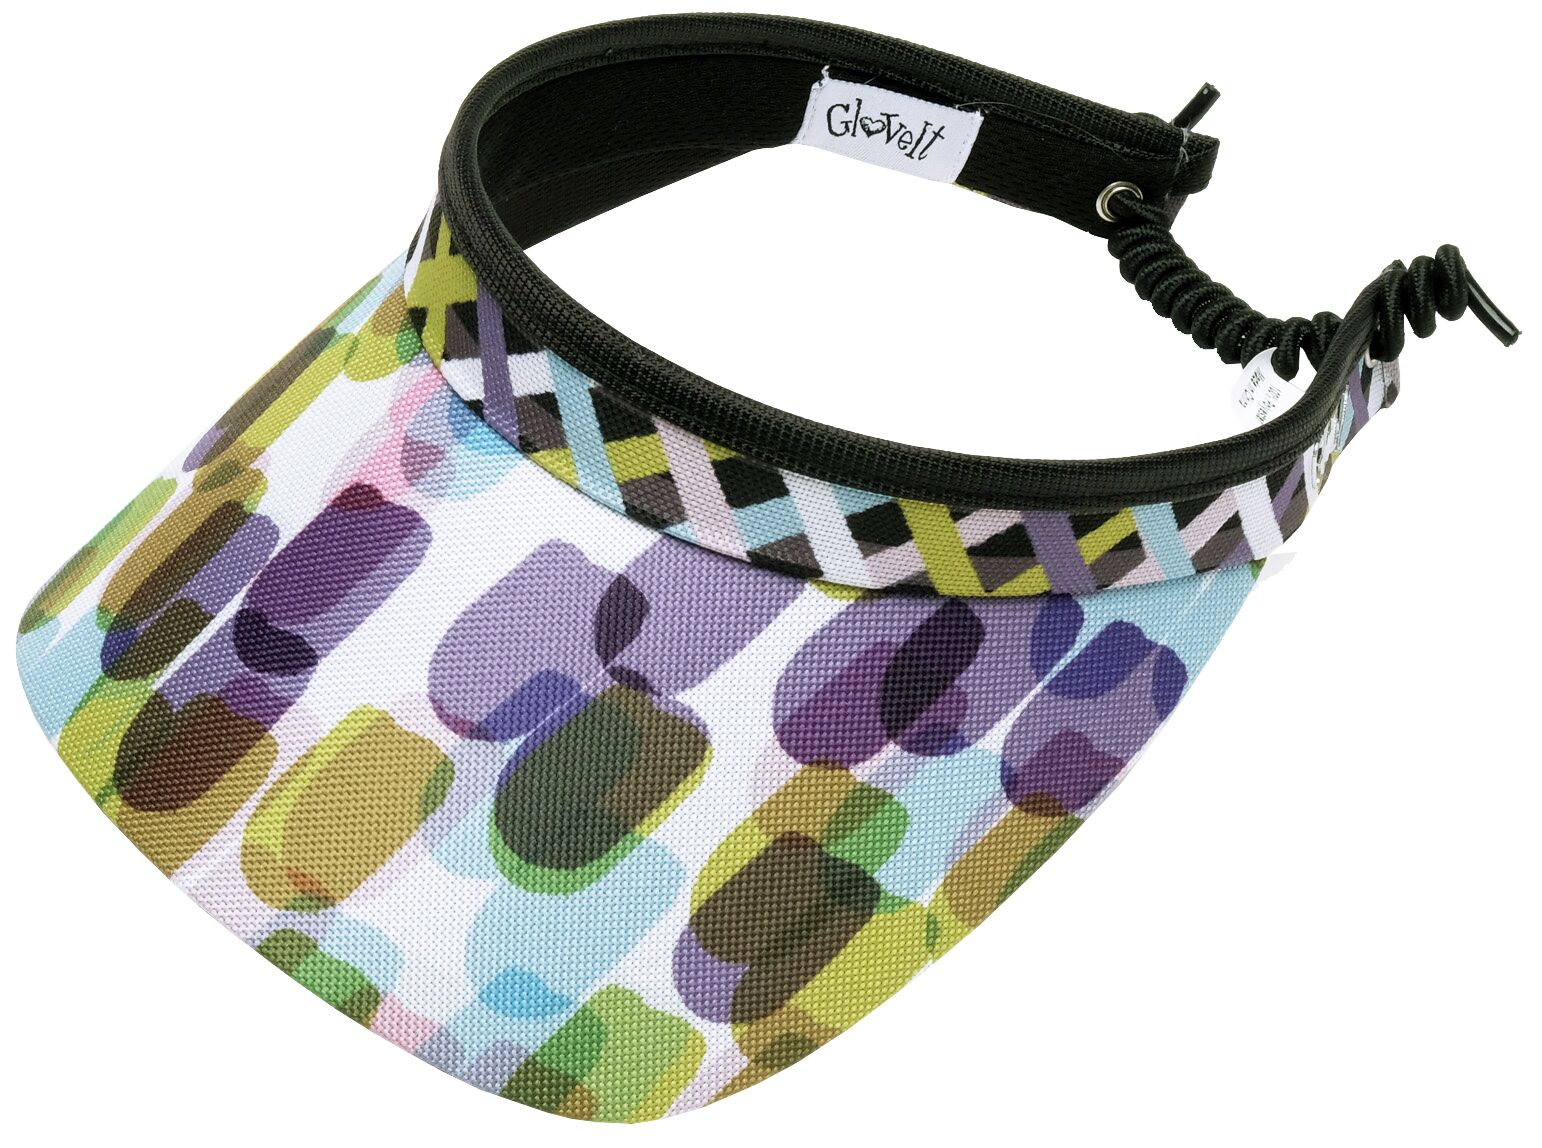 GEO MIX Women's Golf Visor